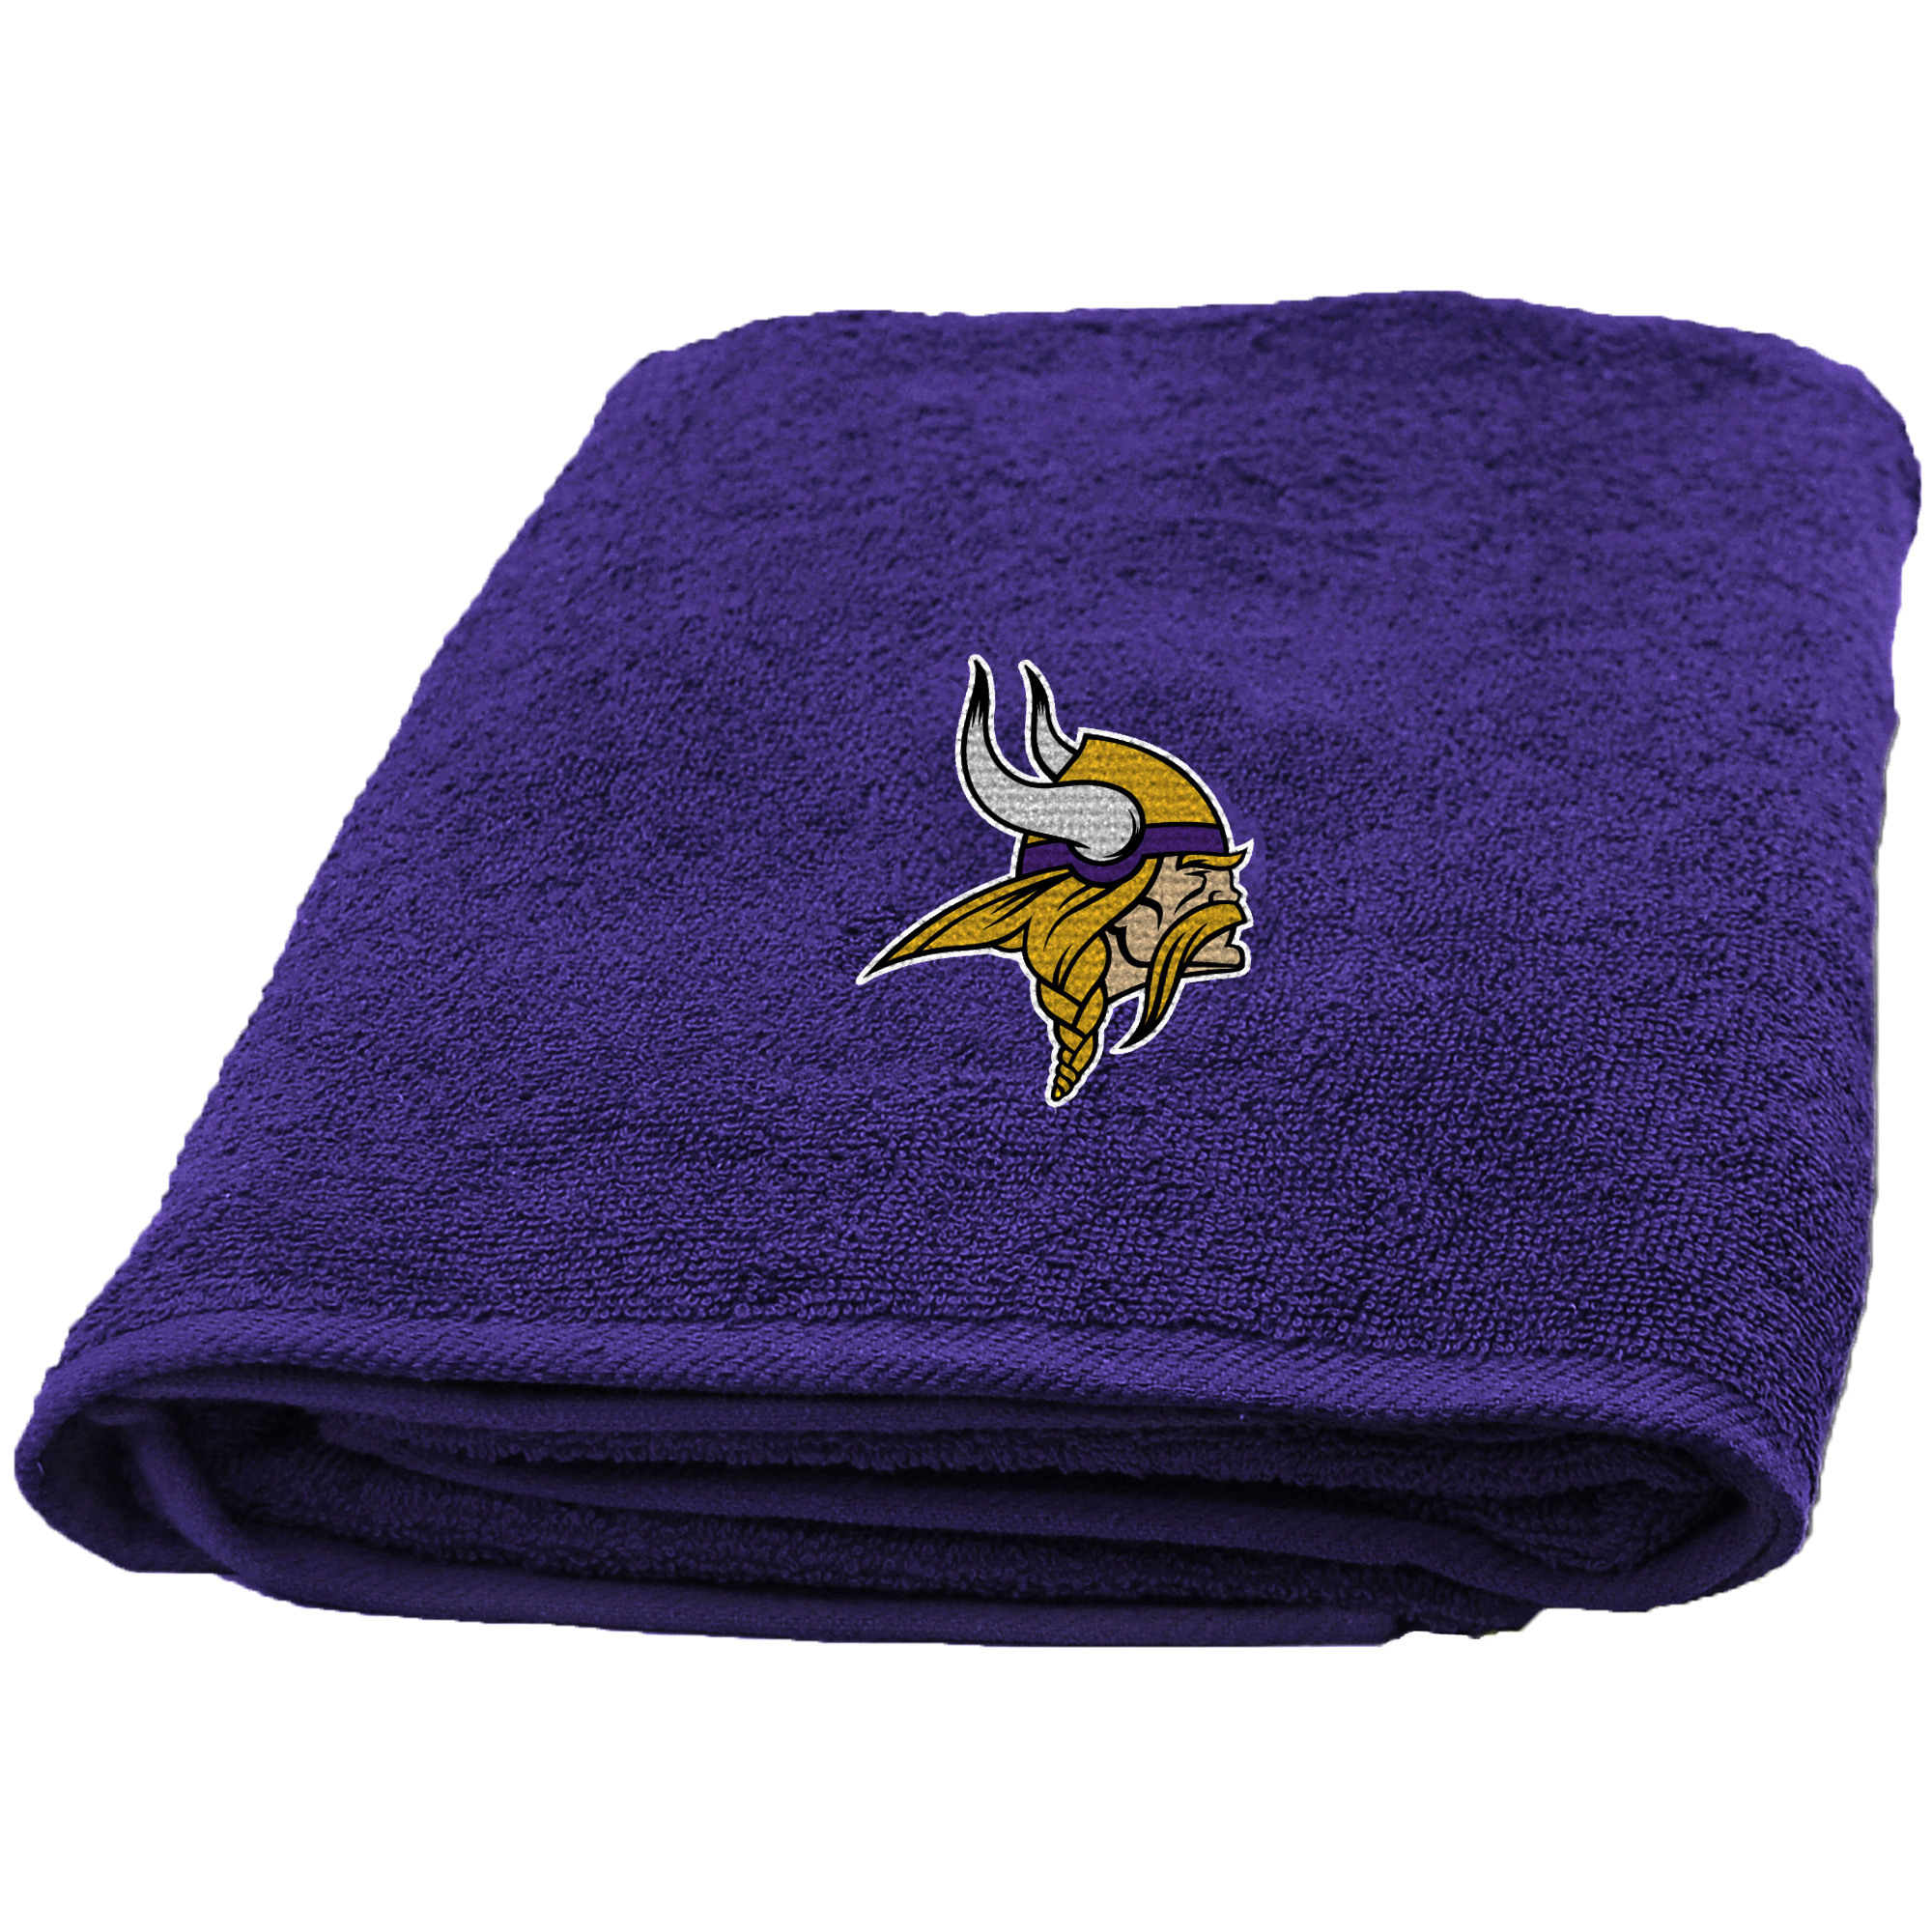 NFL Applique Vikings Bath Towel, 1 Each